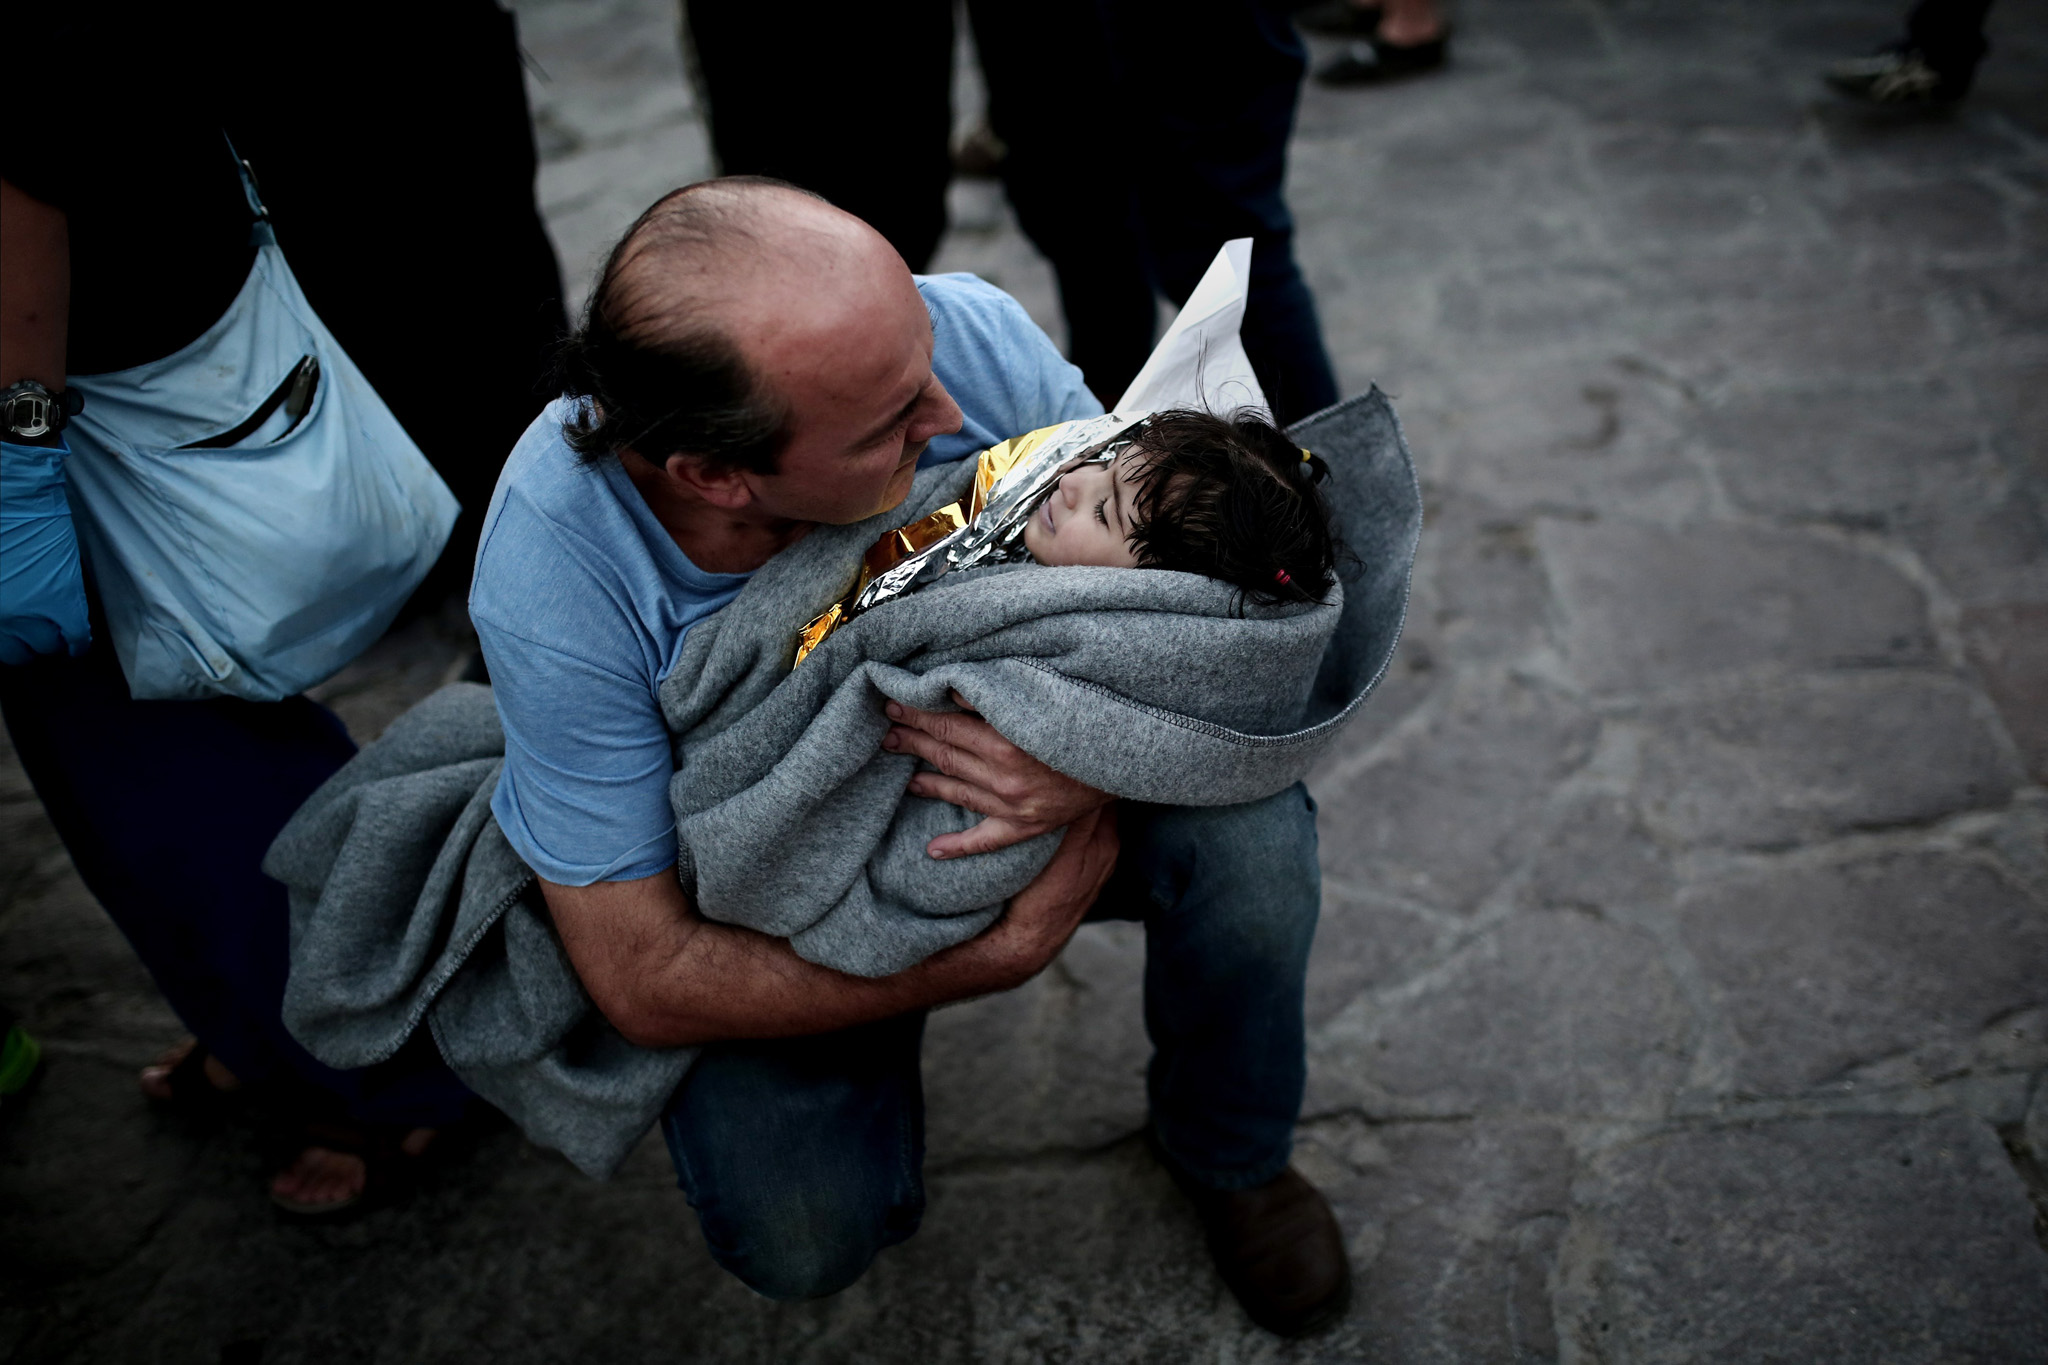 A man holds a child after a boat with refugees and migrants sunk while attempting to reach the Greek island of Lesbos from Turkey, on October 28, 2015. At least five migrants including three children, died on October 28, 2015 after four boats sank between Turkey and Greece, as rescue workers searched the sea for dozens more, the Greek coastguard said. The new accidents brought to 34 the number of migrants found dead in Greek waters this month, according to an AFP tally based on data from Greek port police. Since the start of the year, 560,000 migrants and refugees have arrived in Greece by sea, out of over 700,000 who have reached Europe via the Mediterranean, according to the International Office for Migration (IOM). AFP PHOTO / ANGELOS TZORTZINISANGELOS TZORTZINIS/AFP/Getty Images